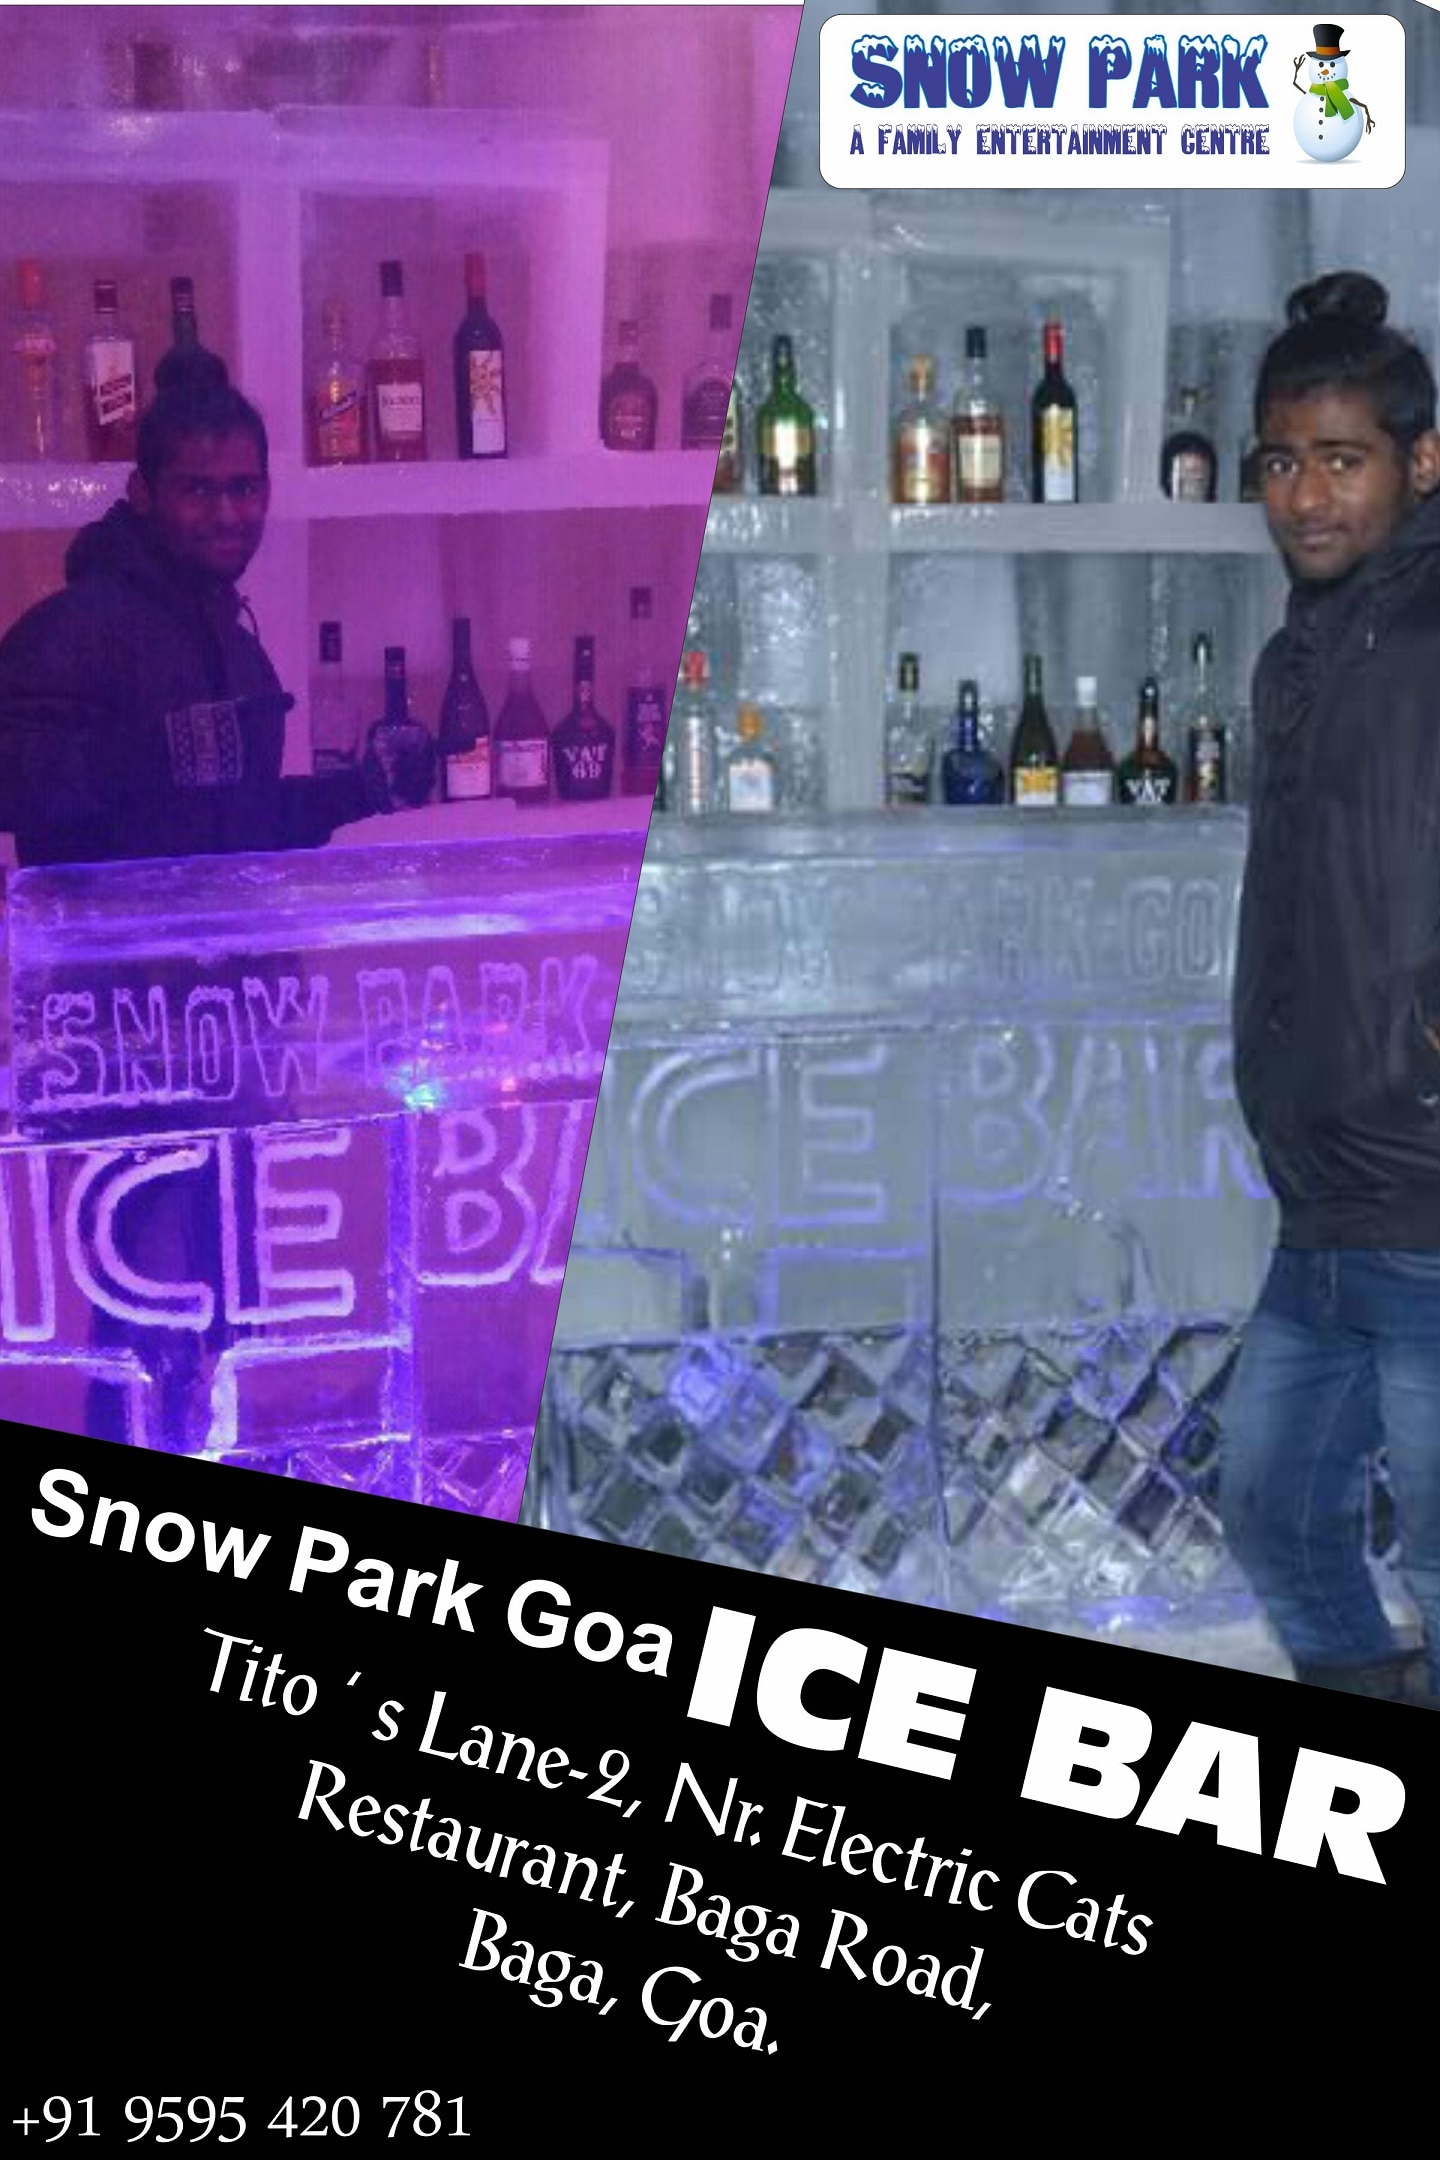 So what plans this #Vacation ? How about chilling @ Snow Park